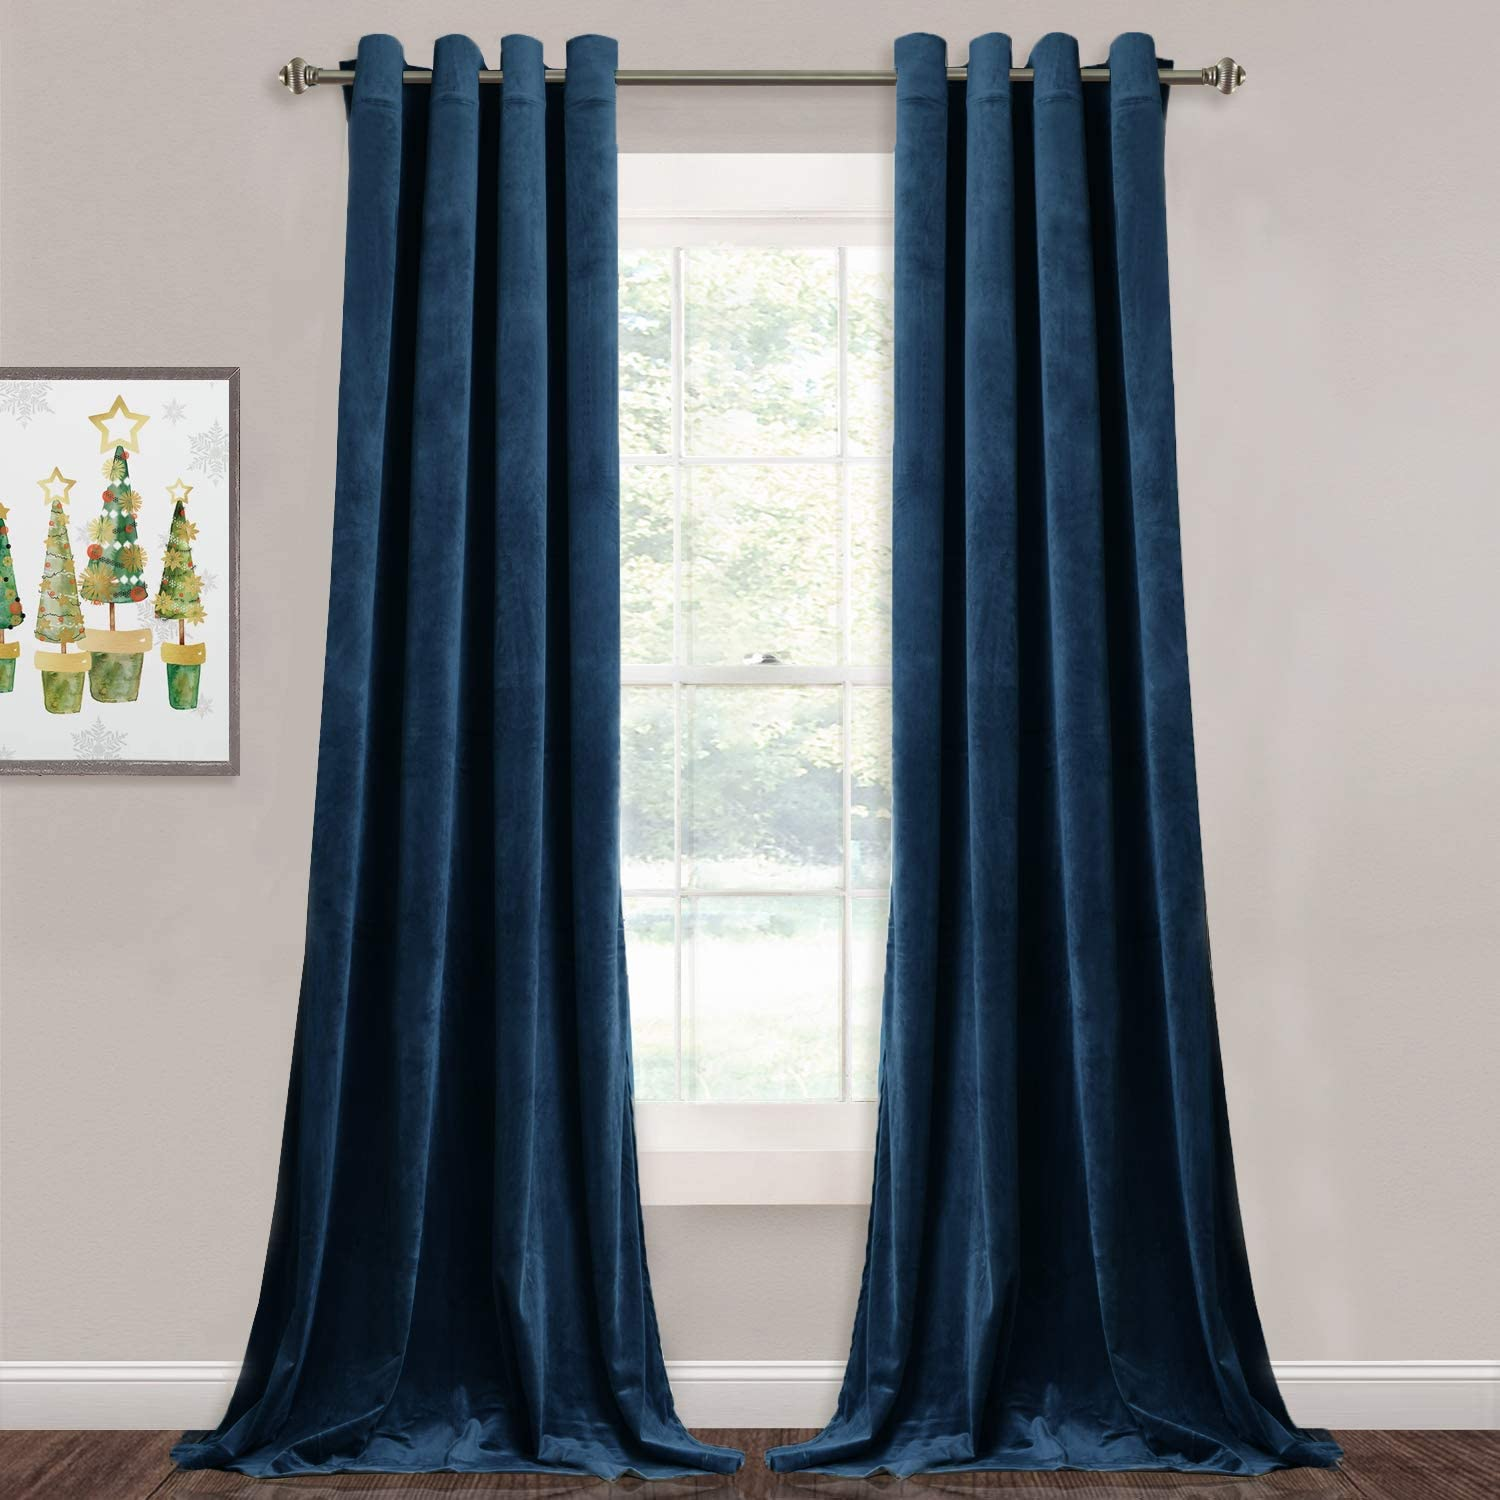 StangH Velvet Blackout Curtains Navy - Luxury Blue Curtains Velvet Textured Panel Drapes for Hotel Hall/Farmhouse Decor, Heavy Duty Summer Heat Block Out, Navy Blue, Wide 52 x Long 96 inches, 2 Pcs